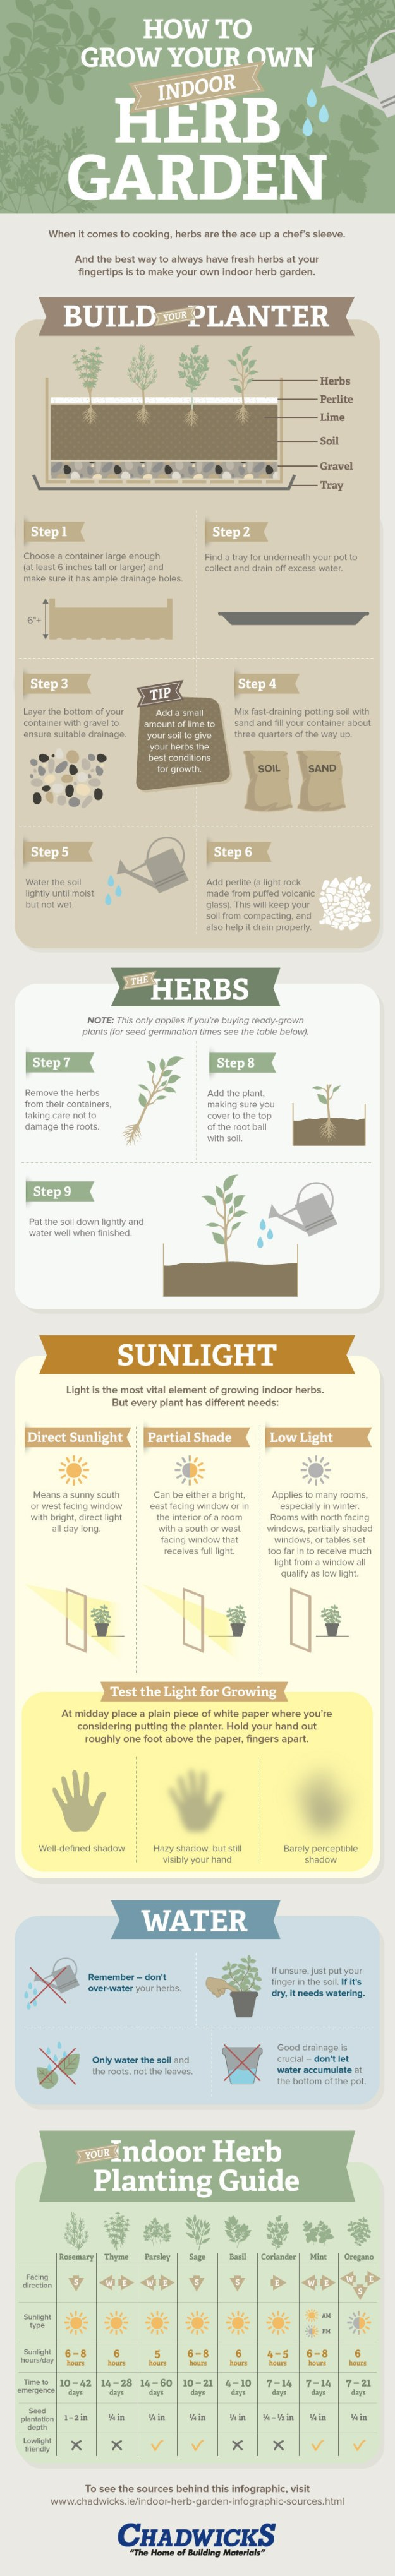 If you plan to grow your herbs indoors, read through this infographic for some helpful hints.